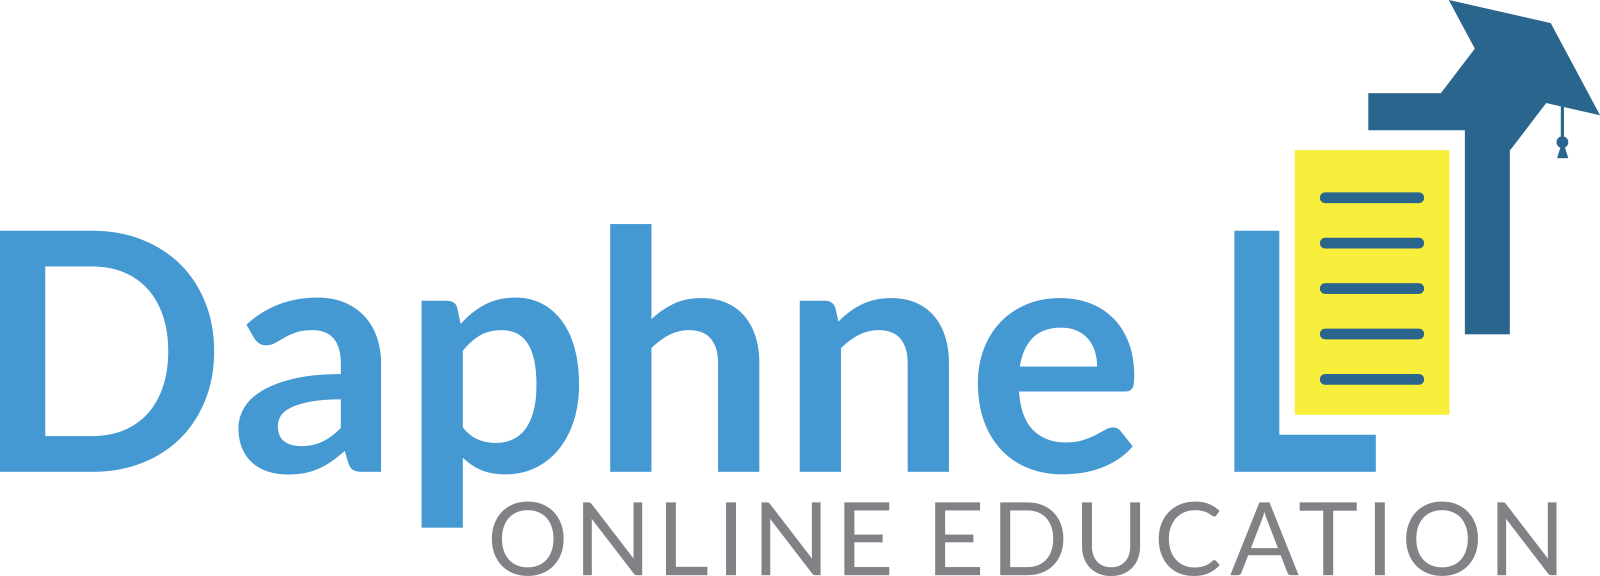 Daphne Online Education